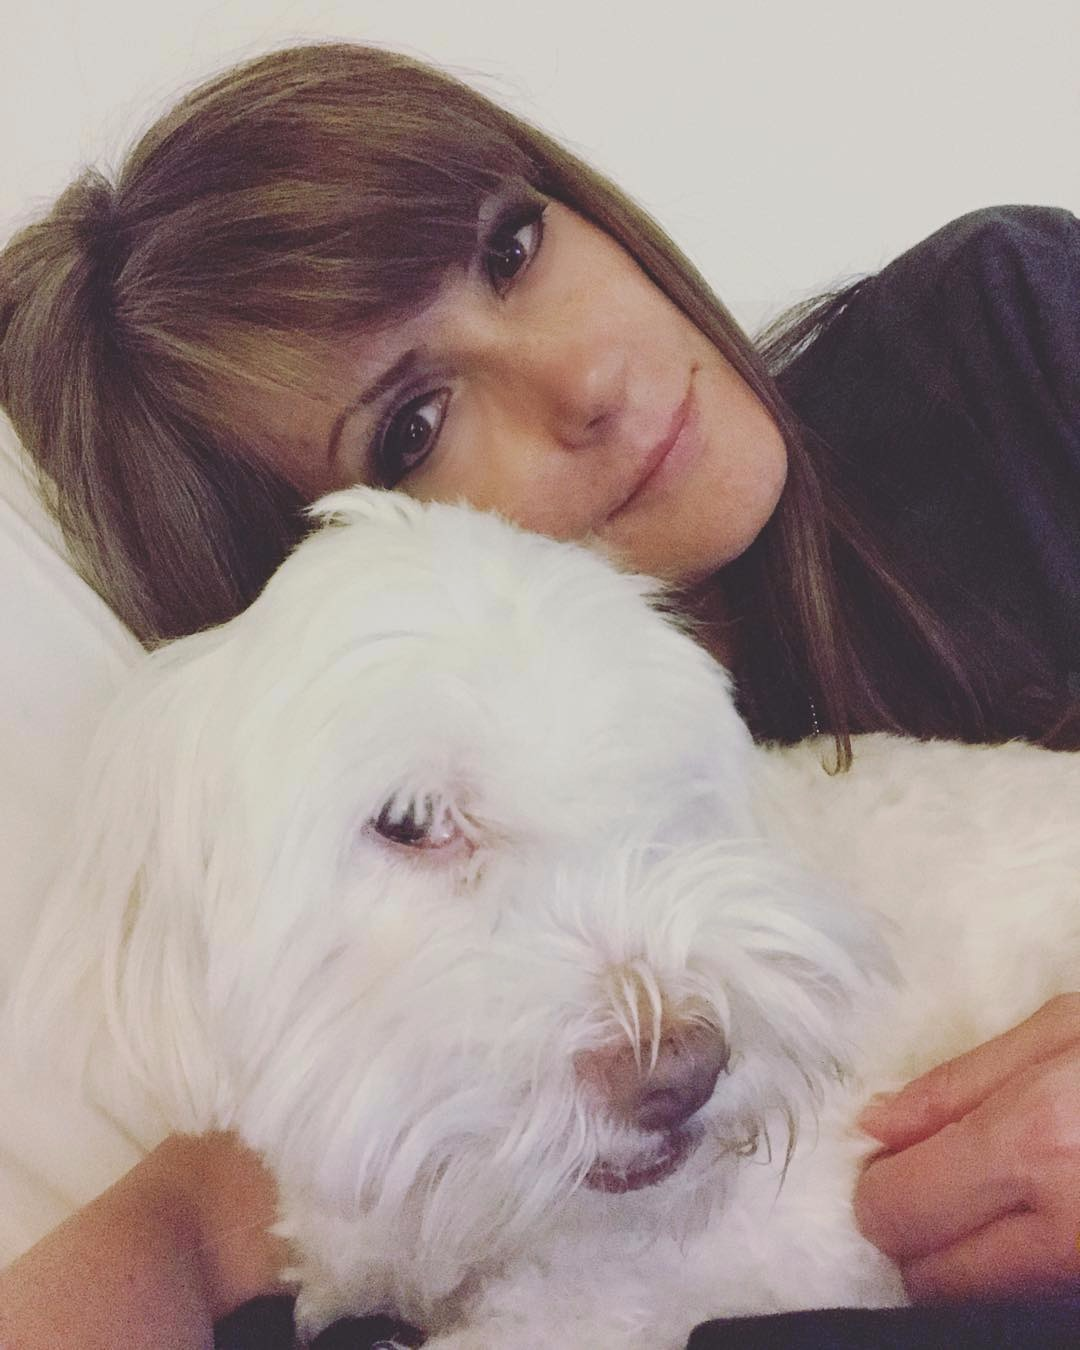 Dagen McDowell relaxing in her bed with her rescue dog. She seems to be in a lazy mood.